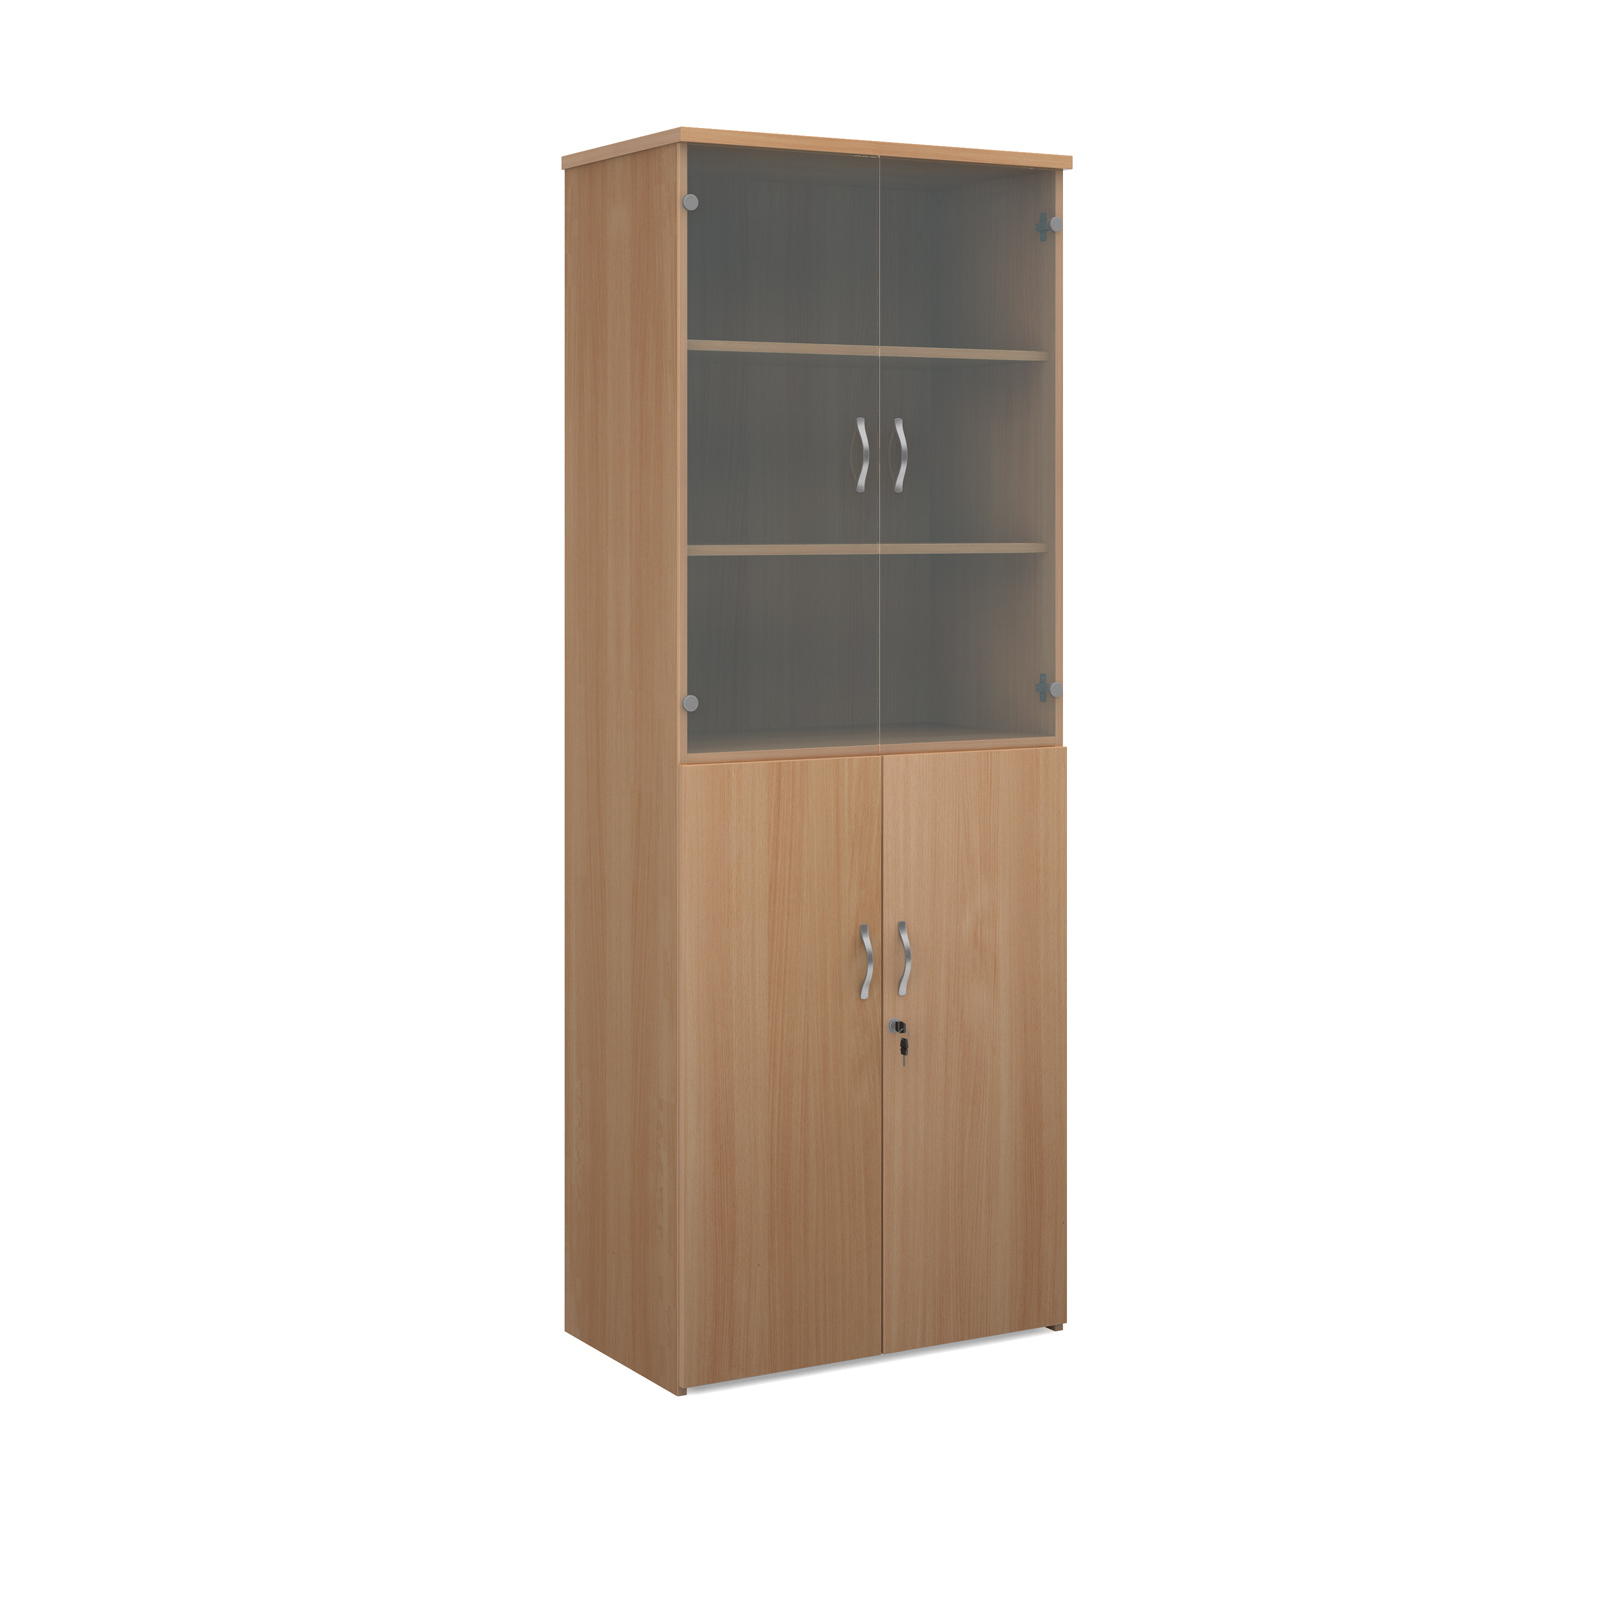 2140mm high combination unit with glass and wood doors in beech